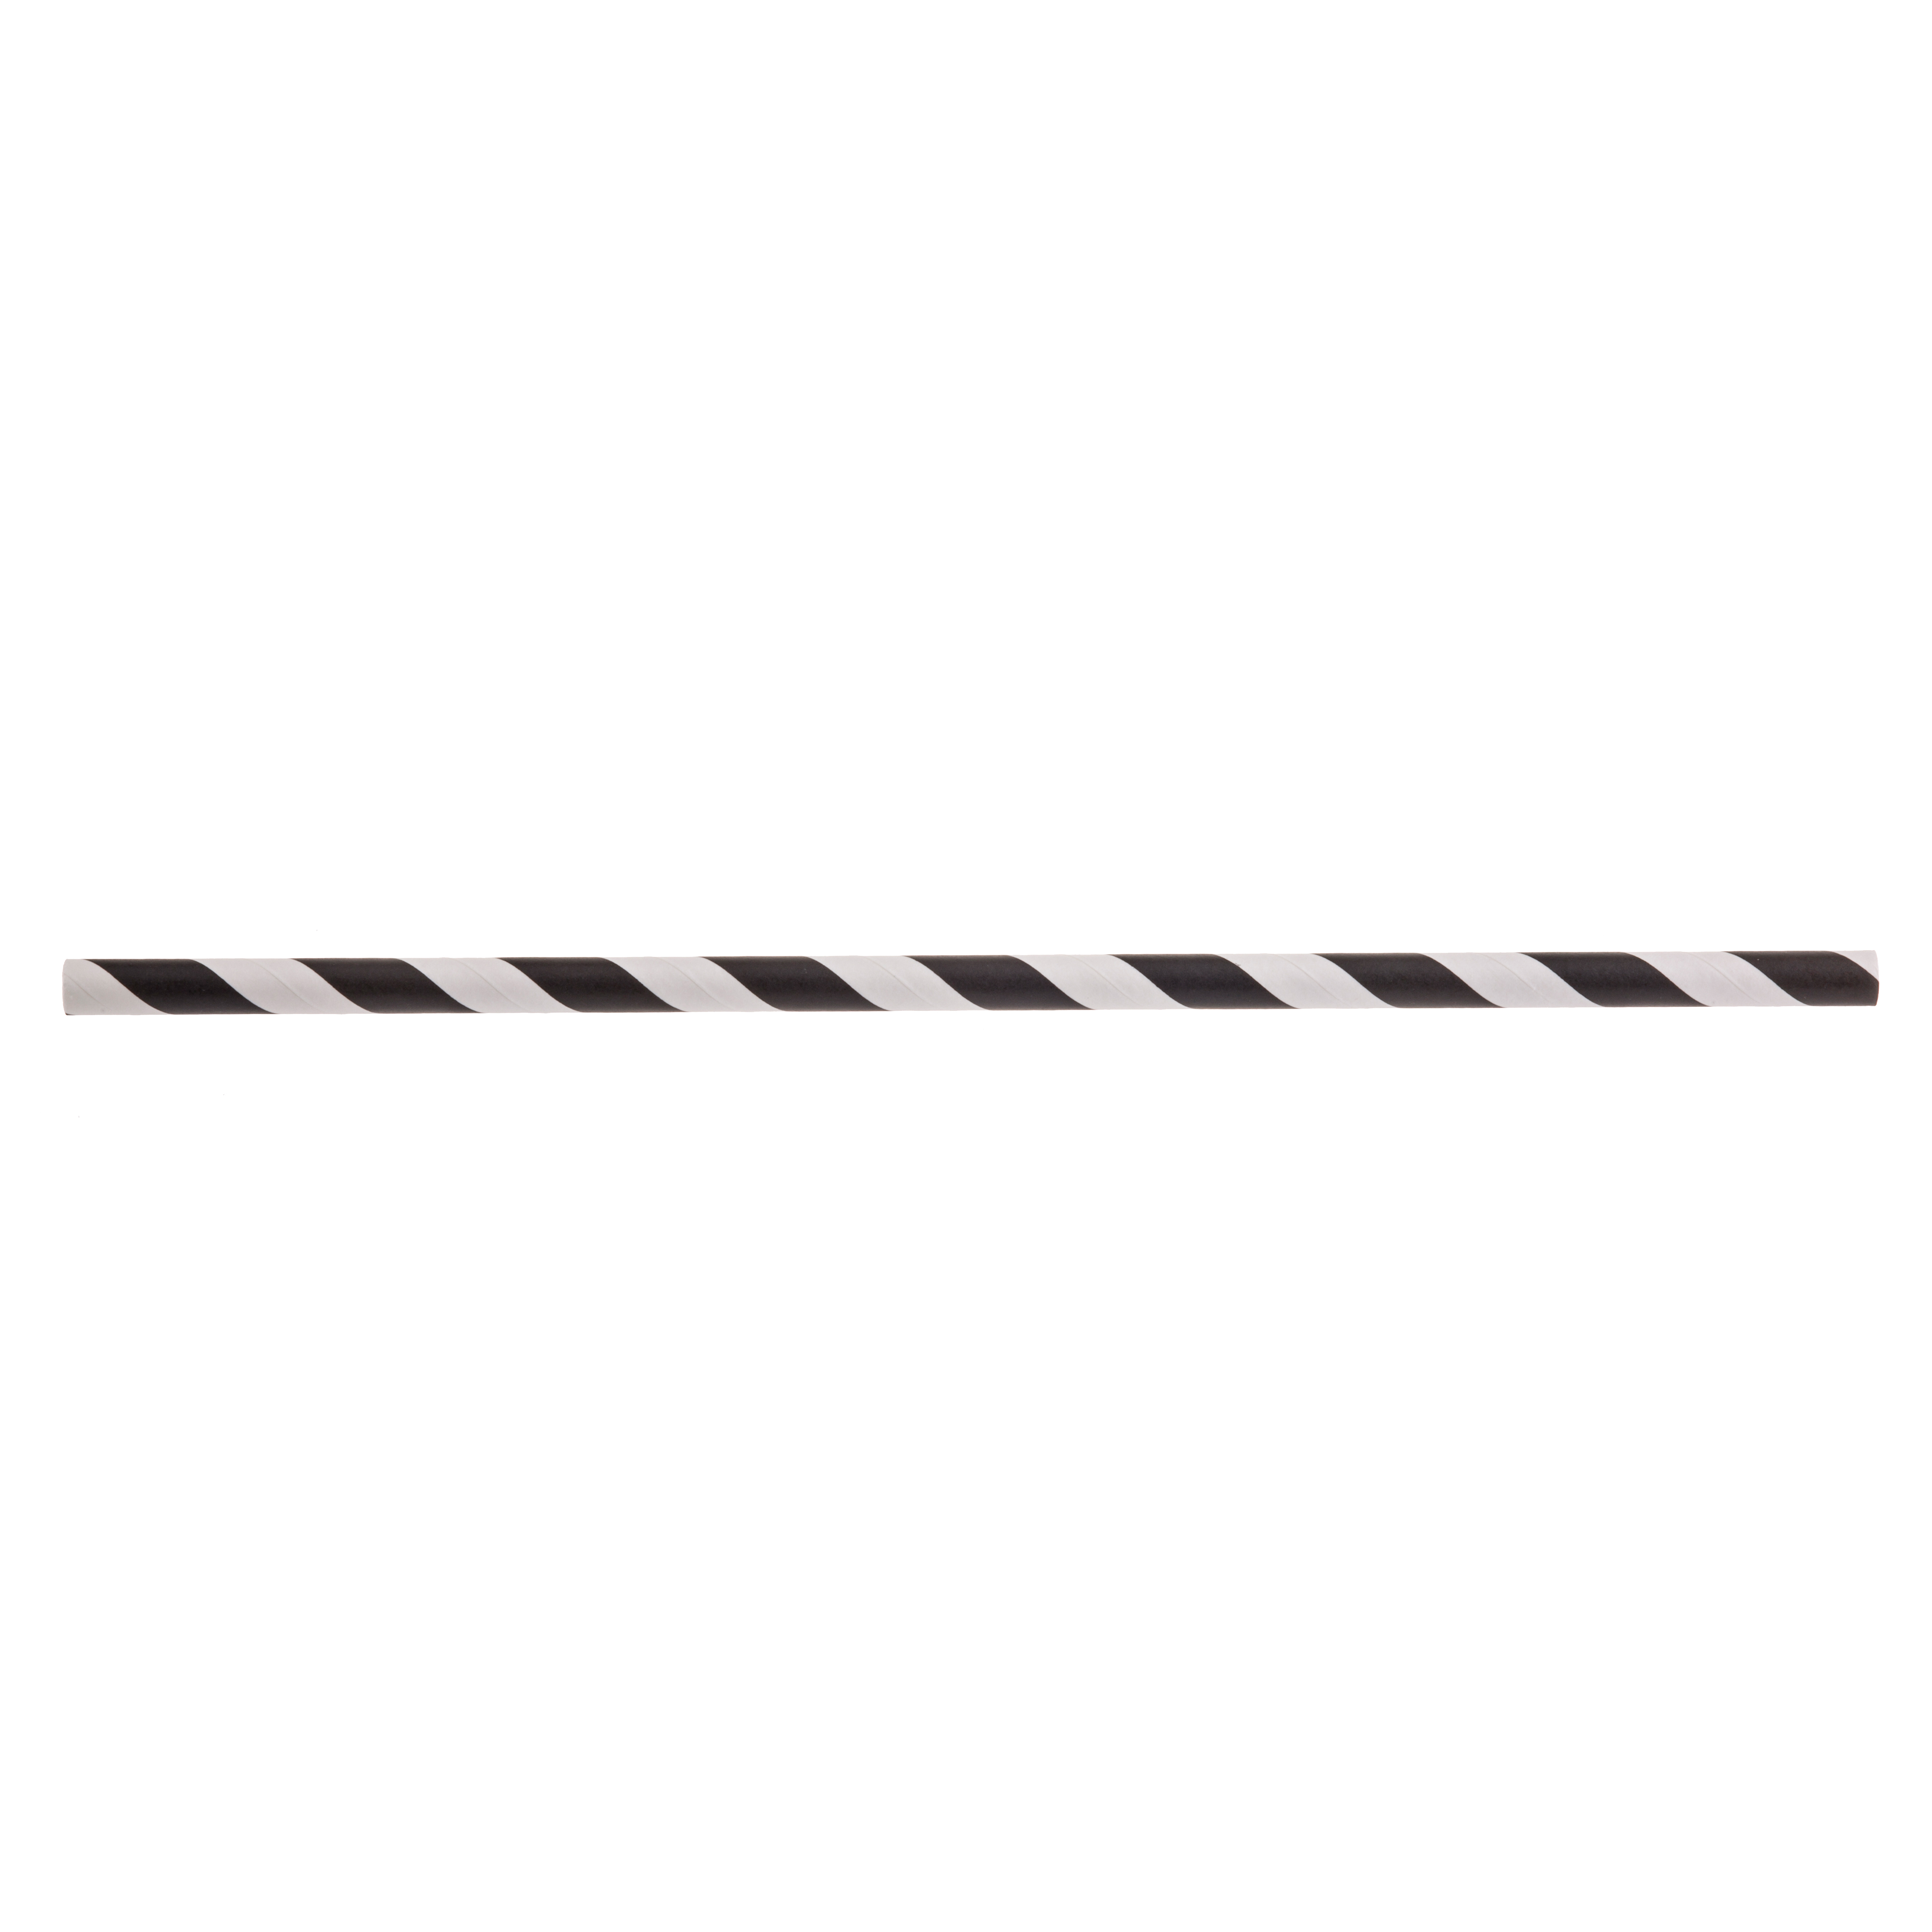 TableCraft Products 700114 straws